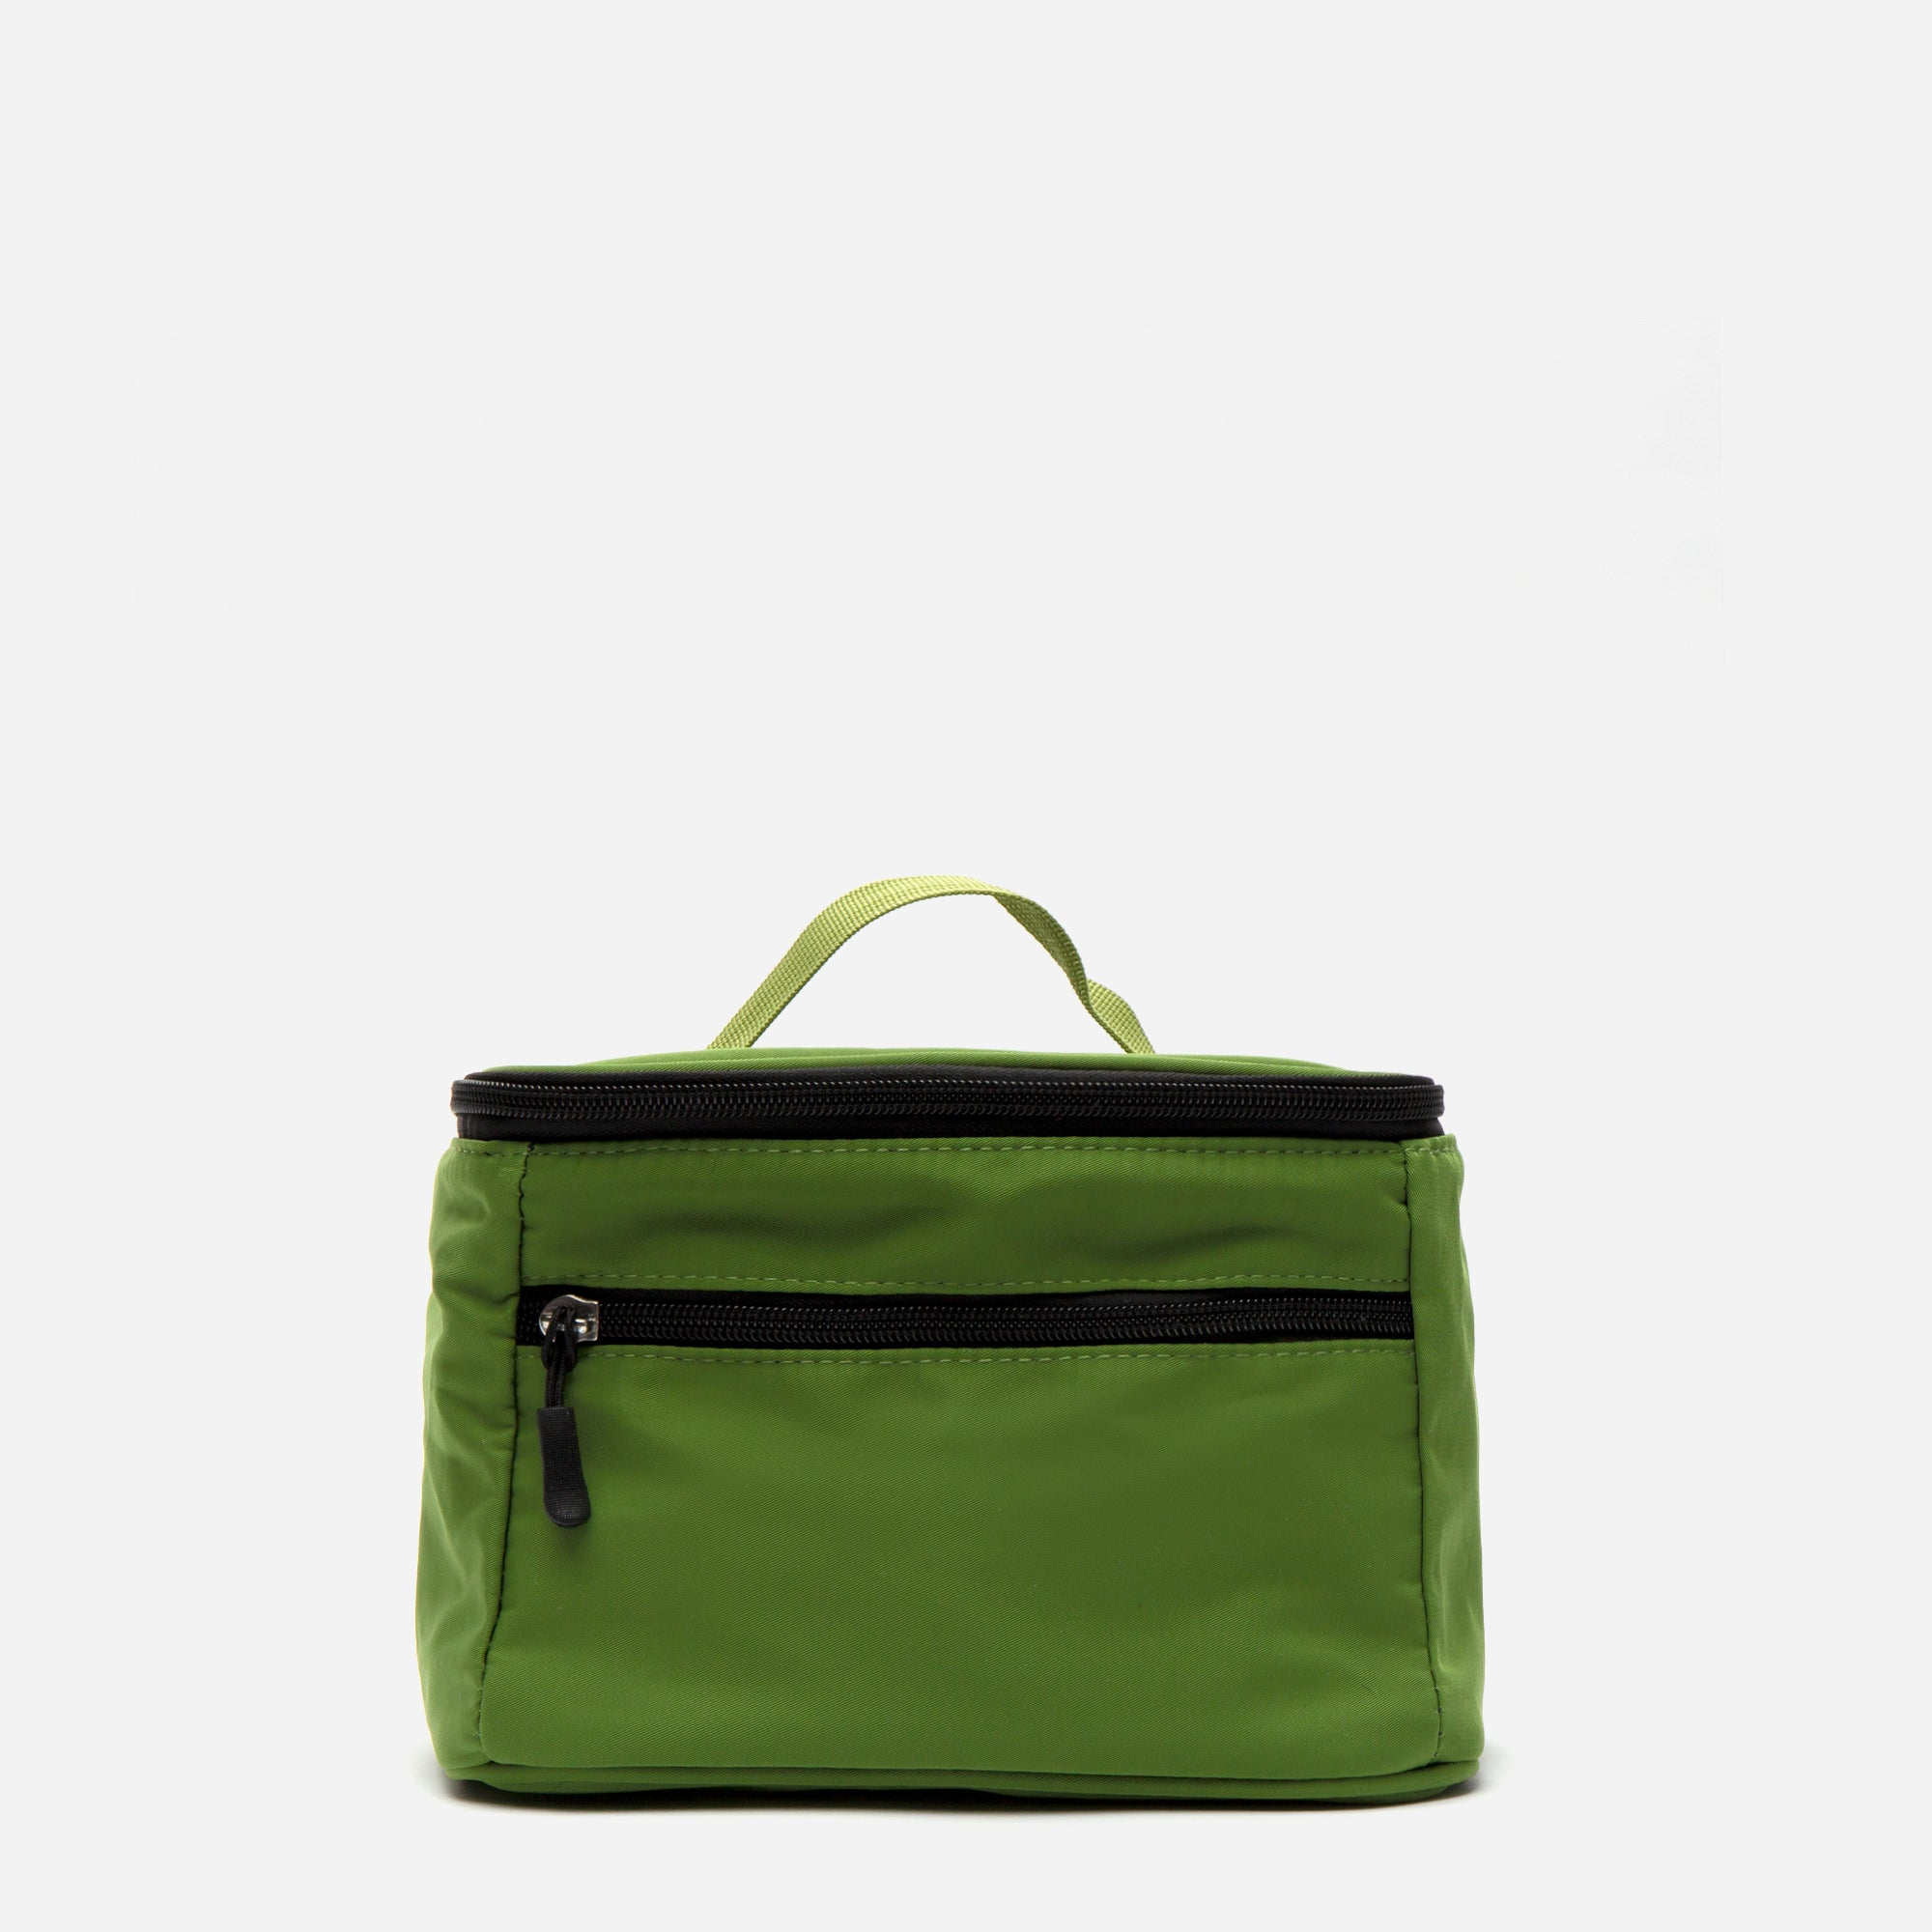 Foldaway Nylon Travel Cosmetic Green - Frances Valentine